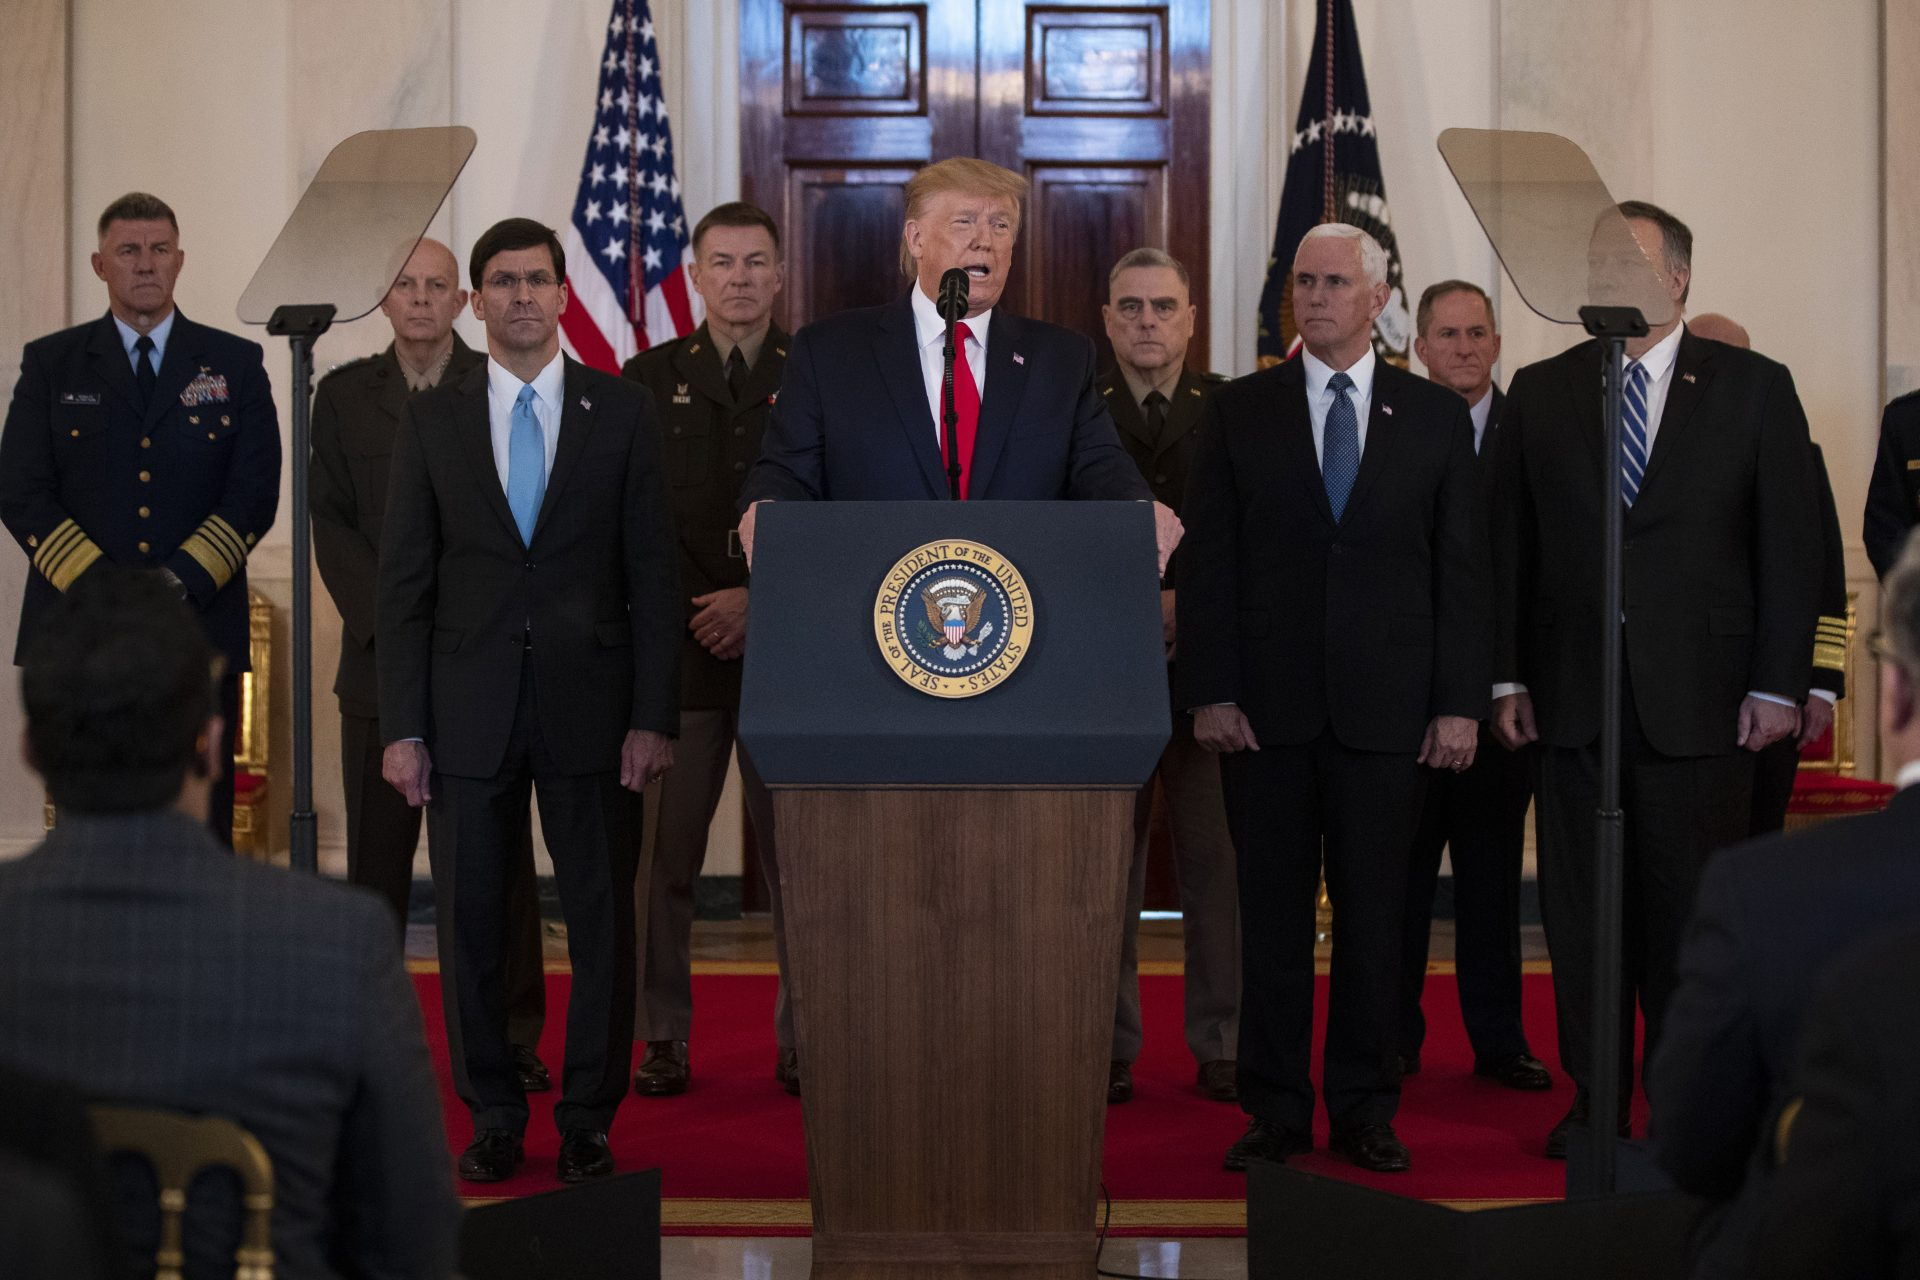 President Donald Trump addresses the nation from the White House on the ballistic missile strike that Iran launched against Iraqi air bases housing U.S. troops, Wednesday, Jan. 8, 2020, in Washington, as Secretary of Defense Mark Esper, Chairman of the Joint Chiefs of Staff Gen. Mark Milley, Vice President Mike Pence, and Secretary of State Mike Pompeo, and others look on.